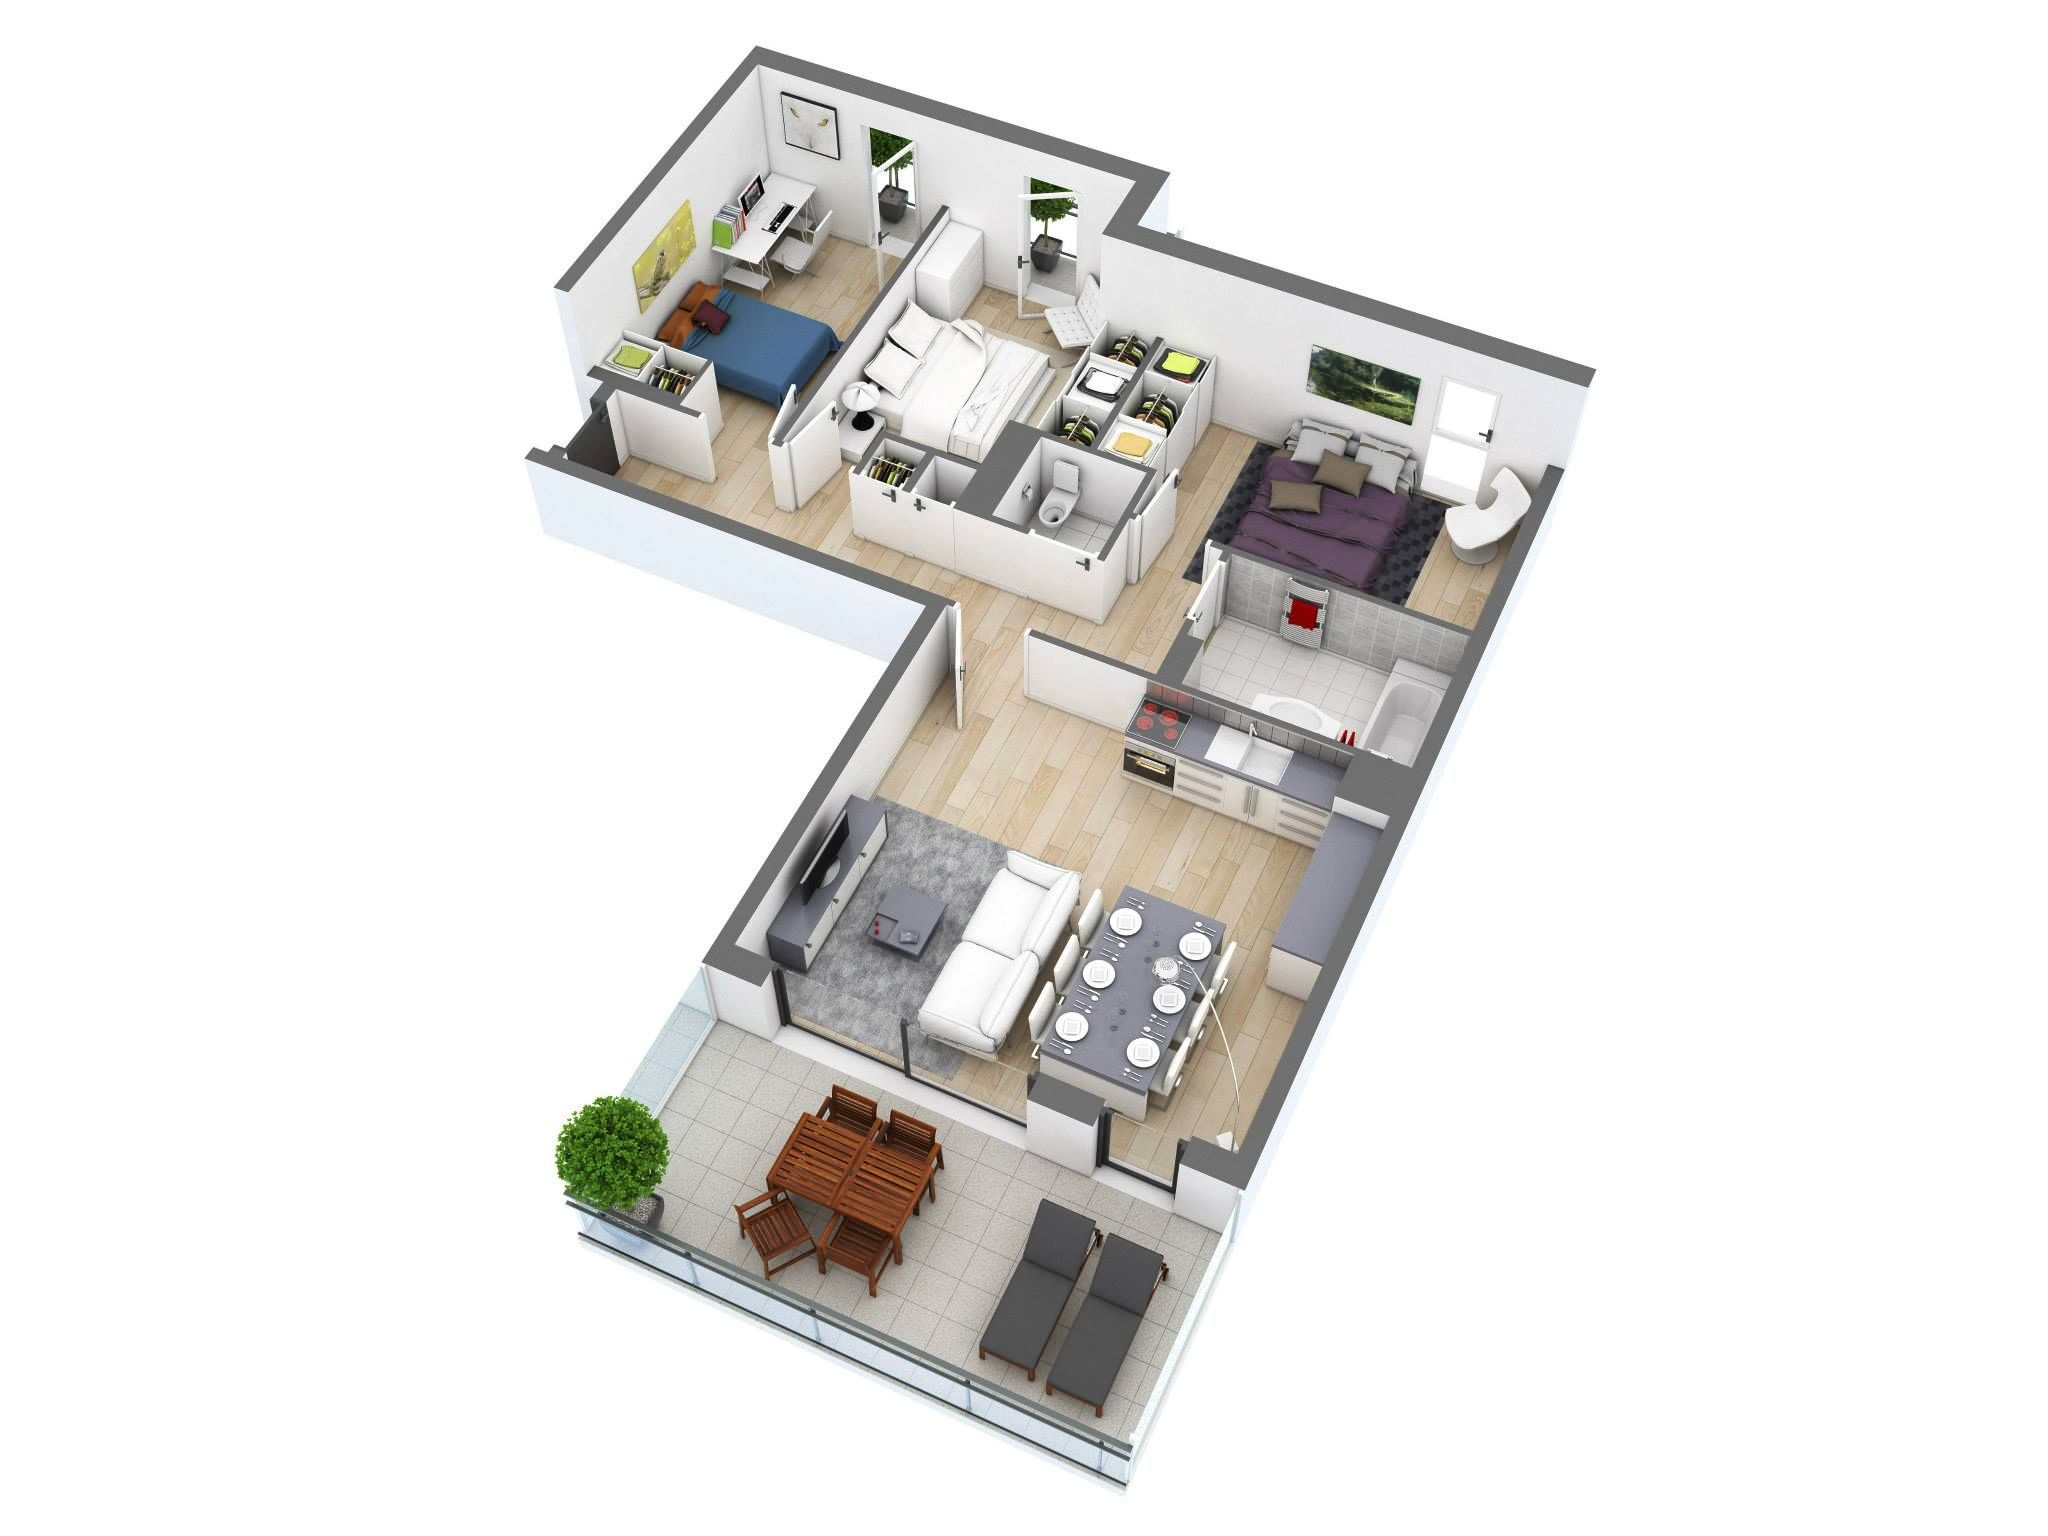 Understanding 3D Floor Plans And Finding The Right Layout ...